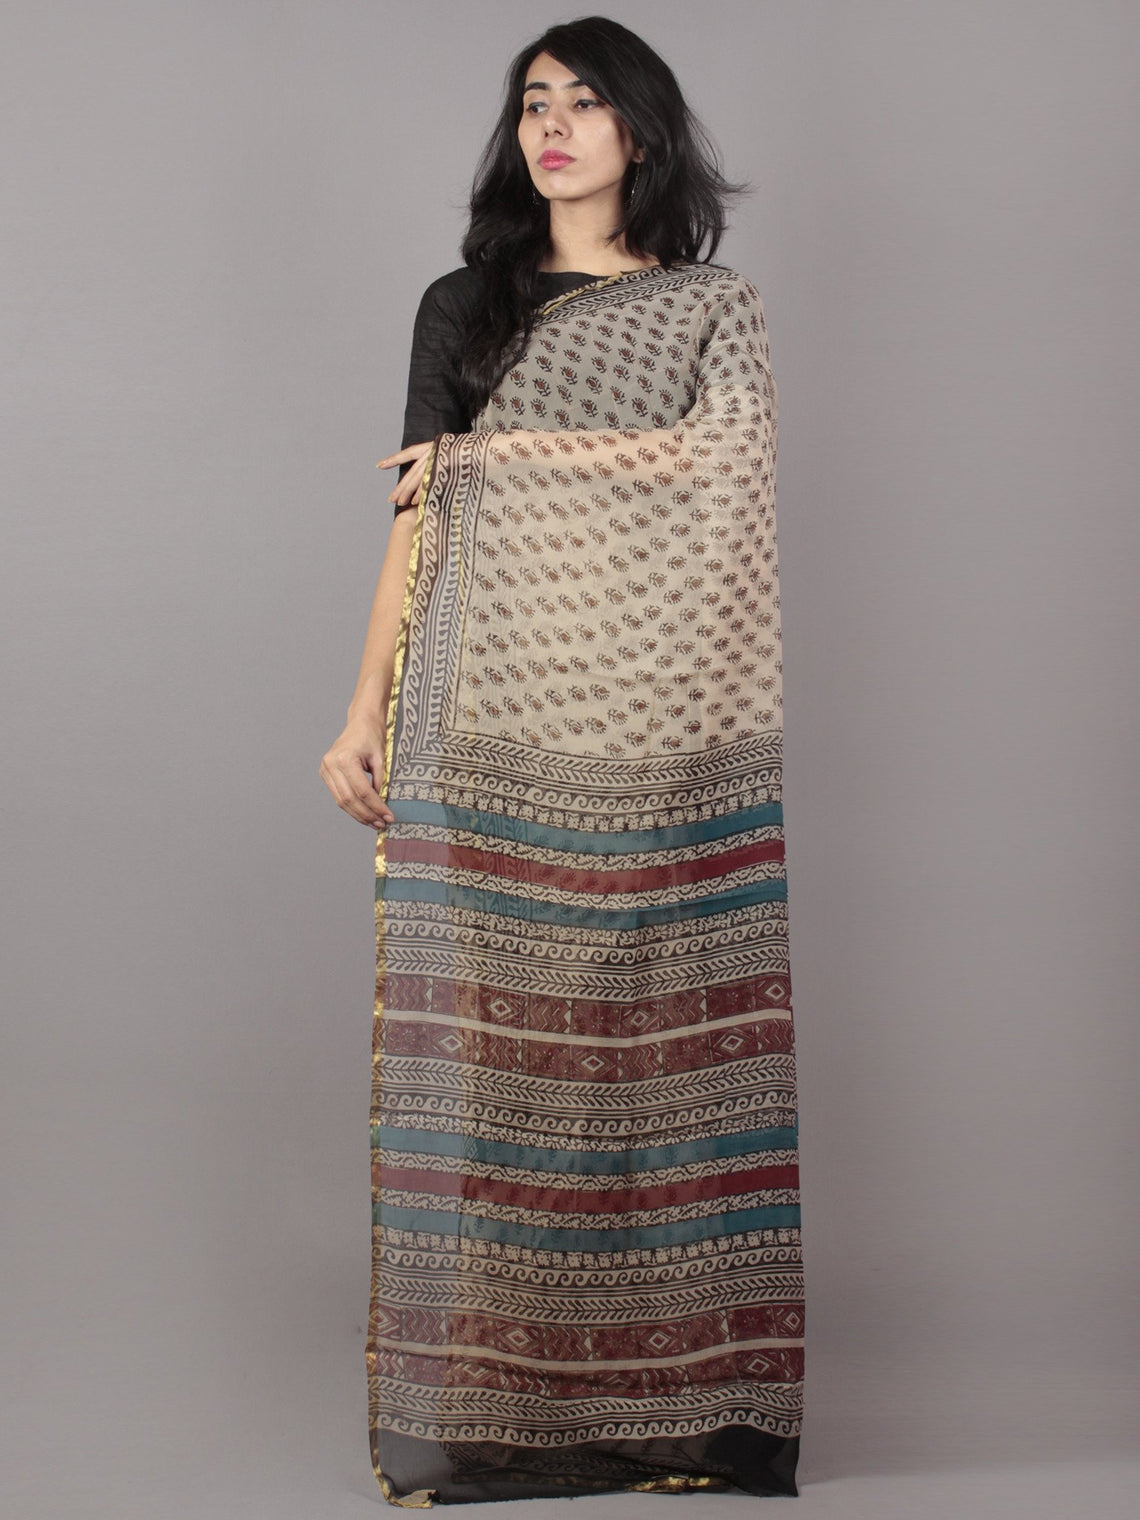 Ivory Black Light Red Hand Block Printed Chiffon Saree - S031701699